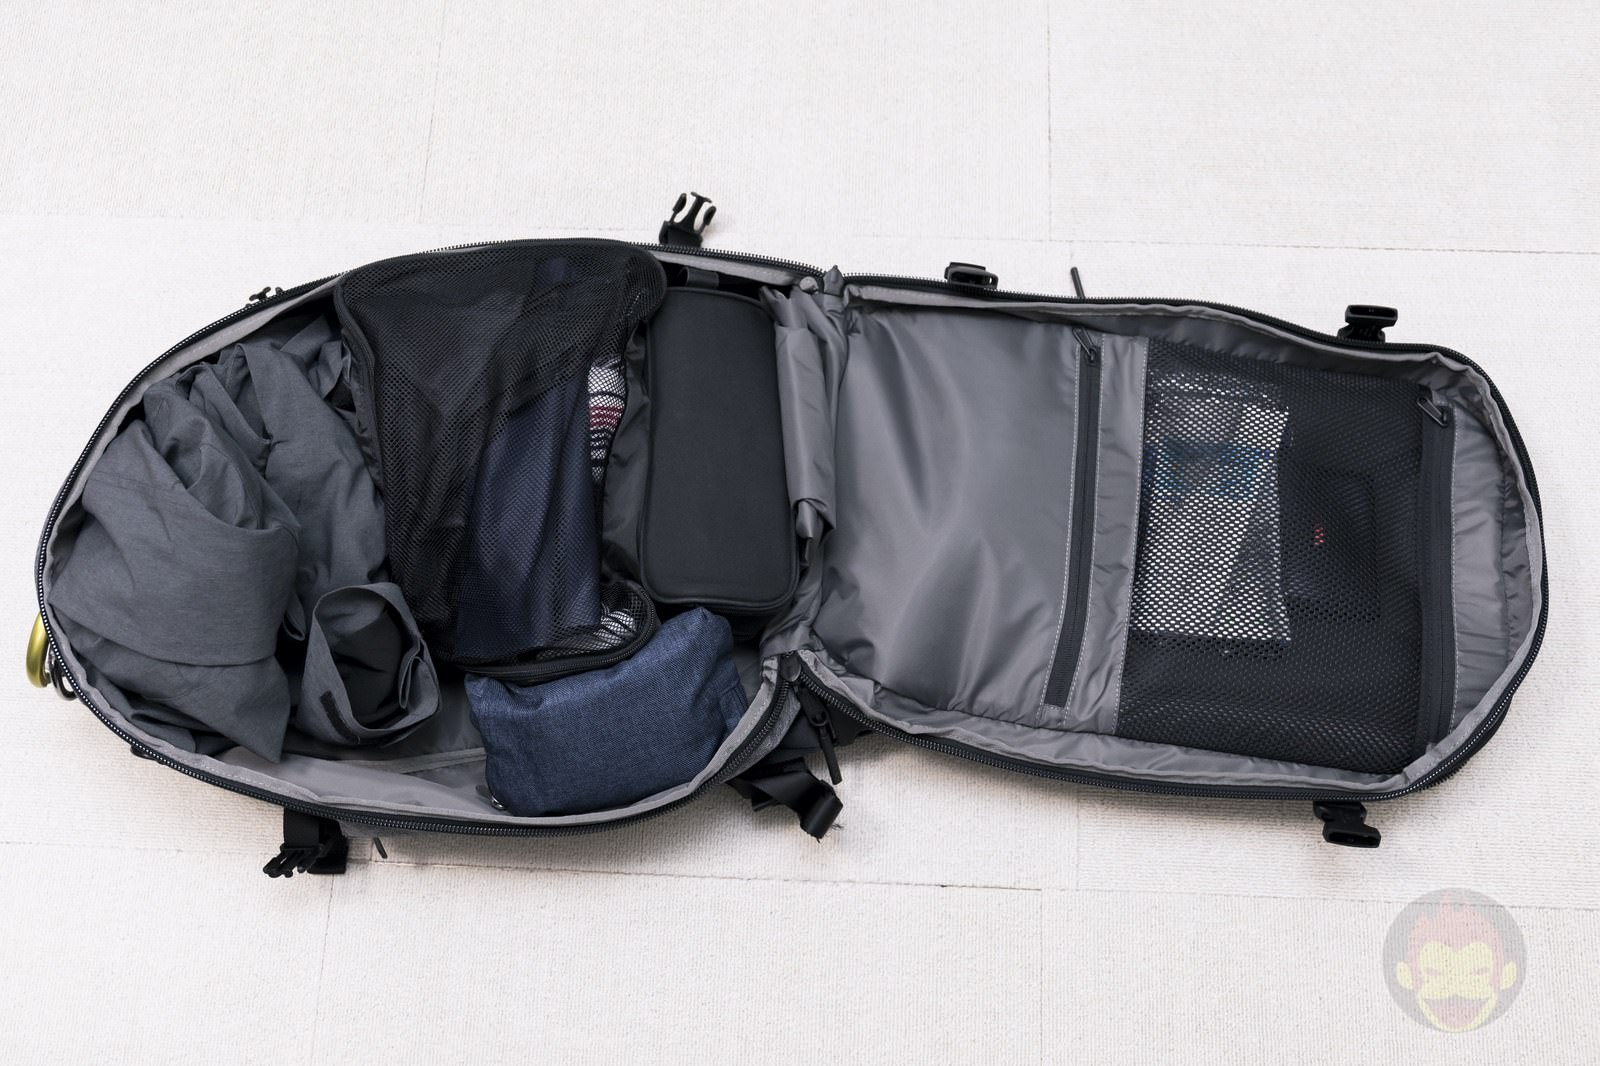 Aer Travel Pack 2 Backpack Review 26